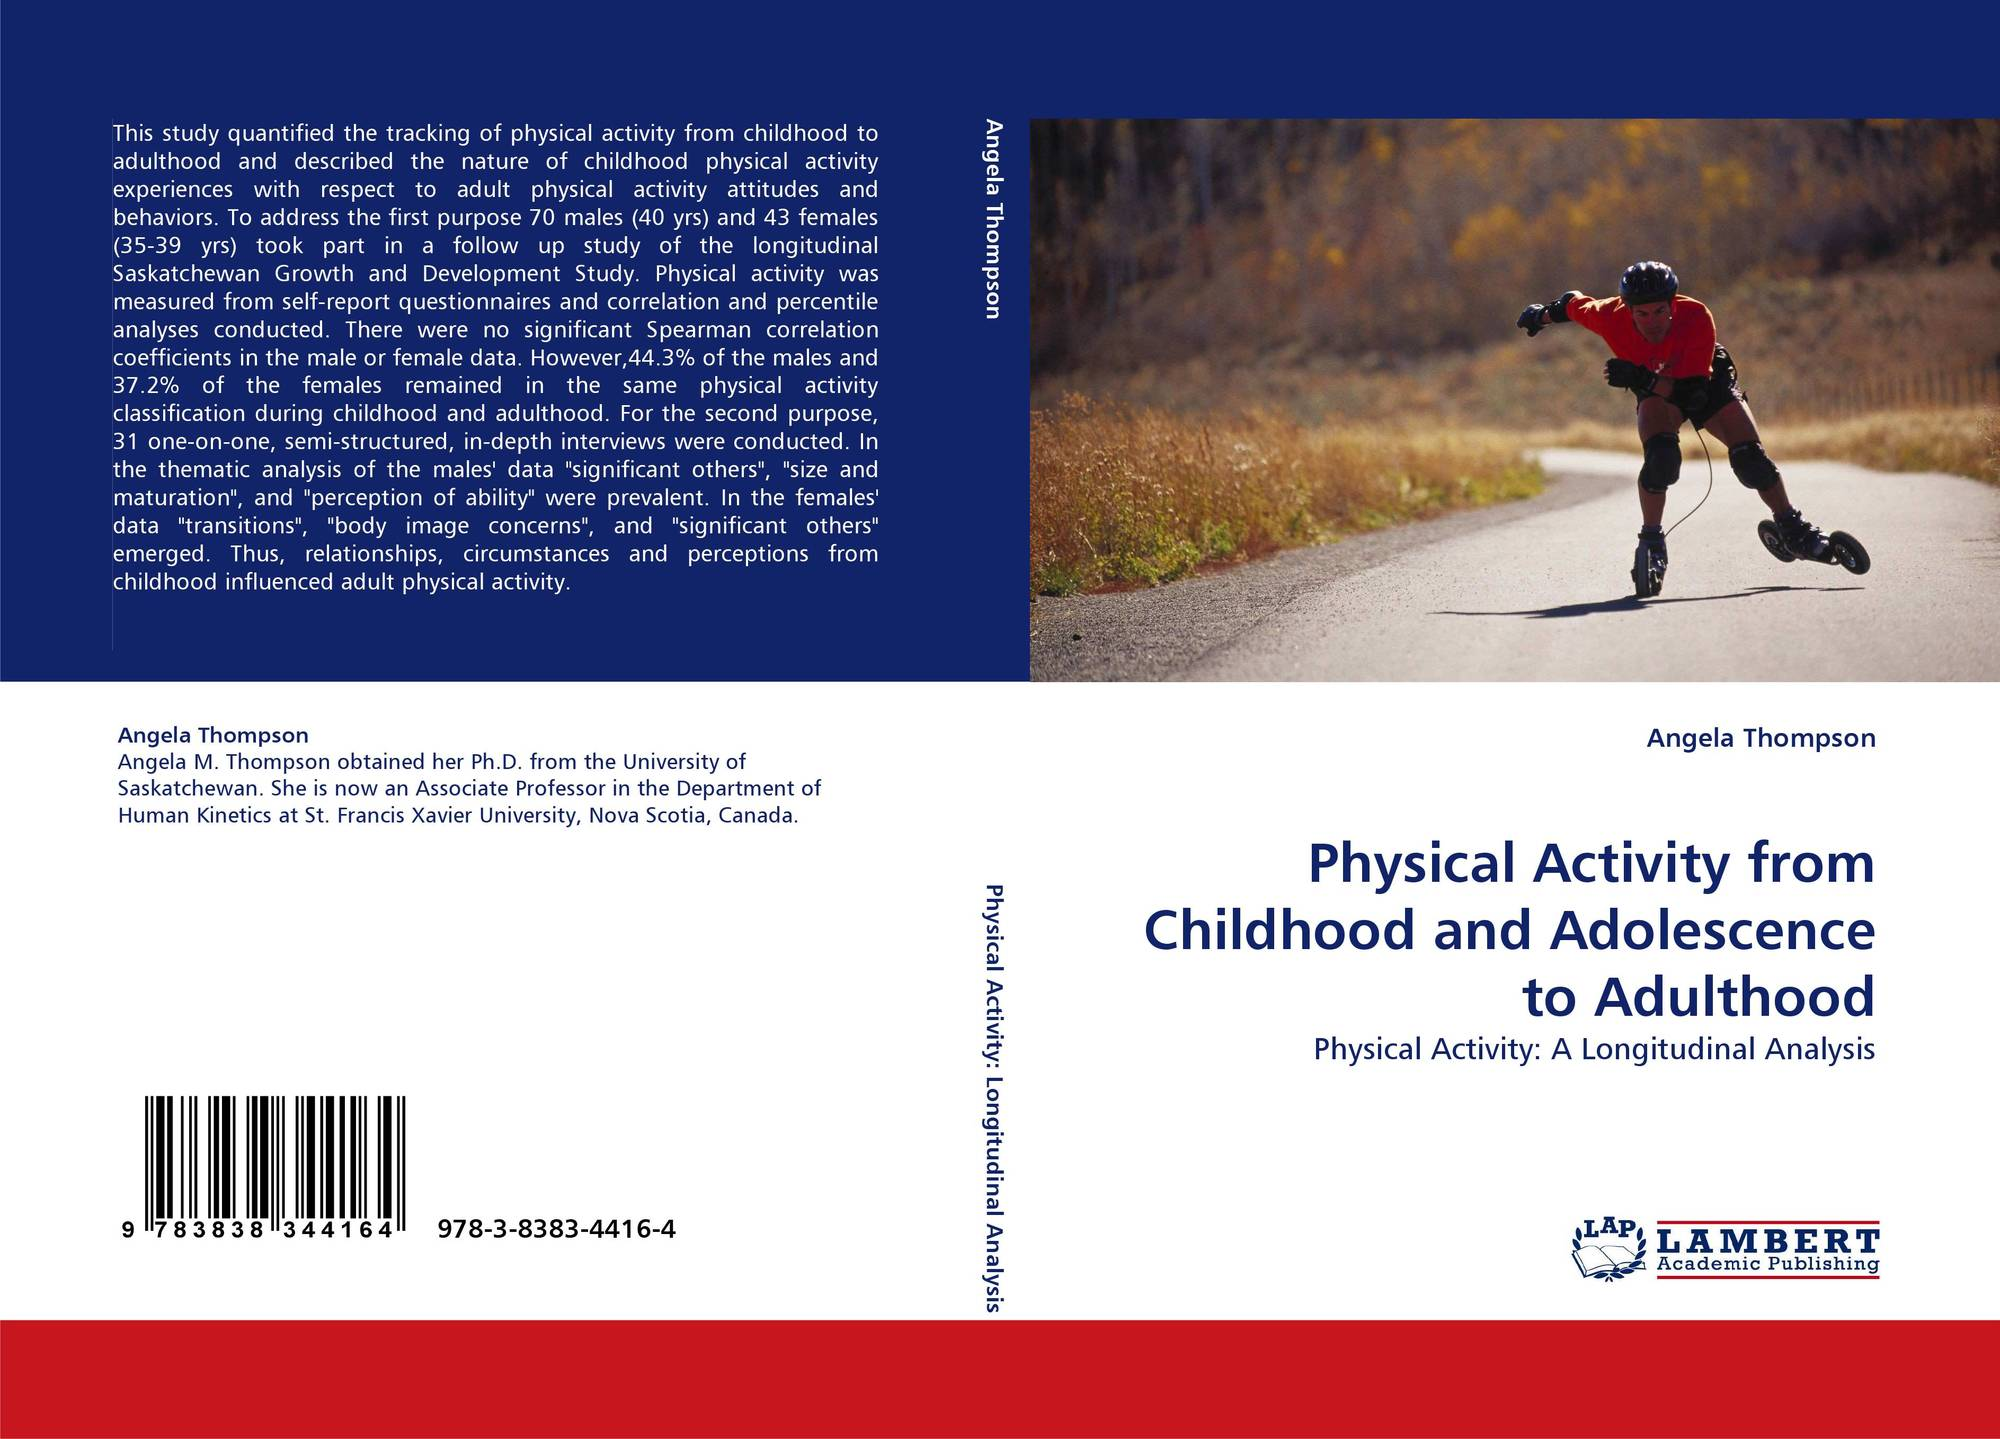 an analysis of societys influences on the changes from childhood to adulthood in adventures of huckl Author contributionsall authors contributed to the study design l j knoll and l magis-weinberg programmed the experiment l j knoll and l magis.